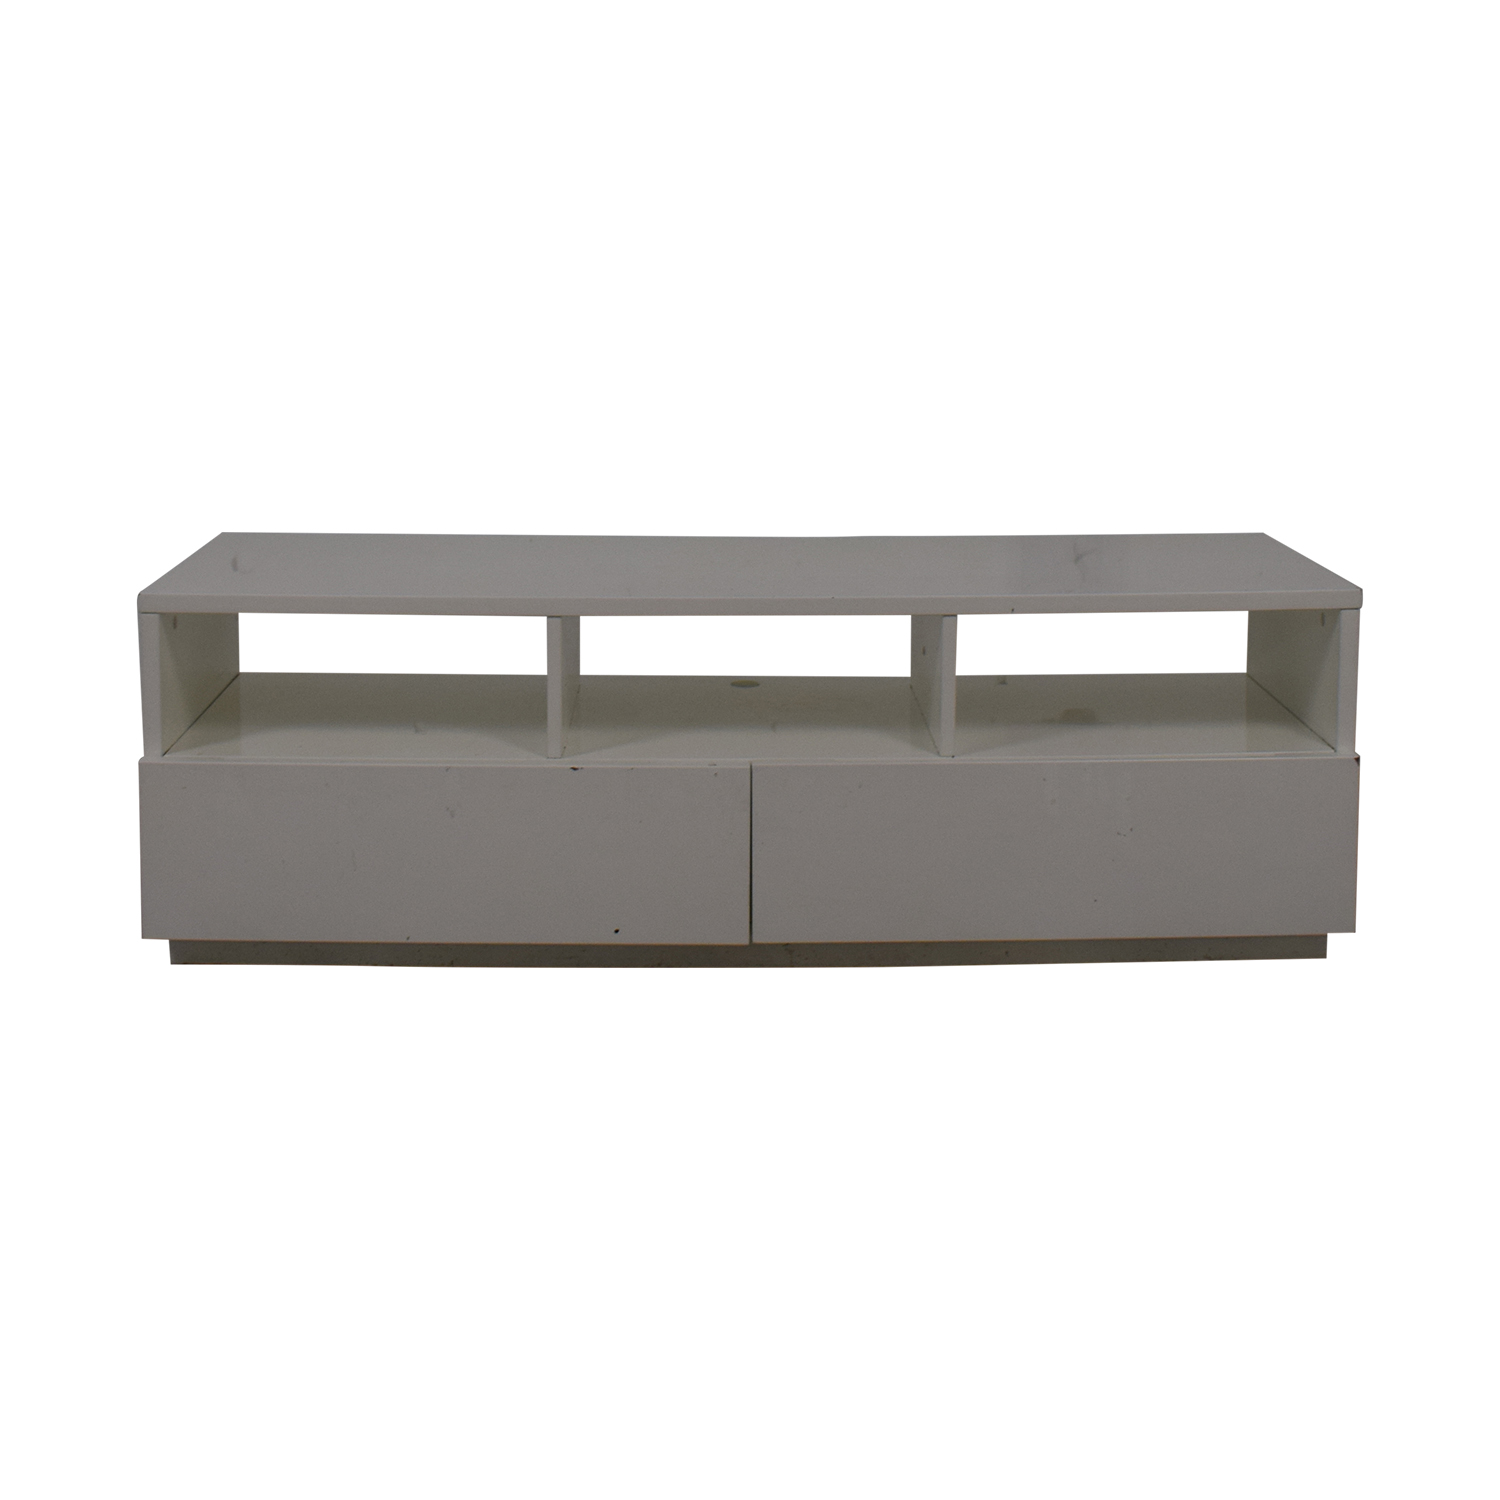 CB2 Chill White Media Console / Storage